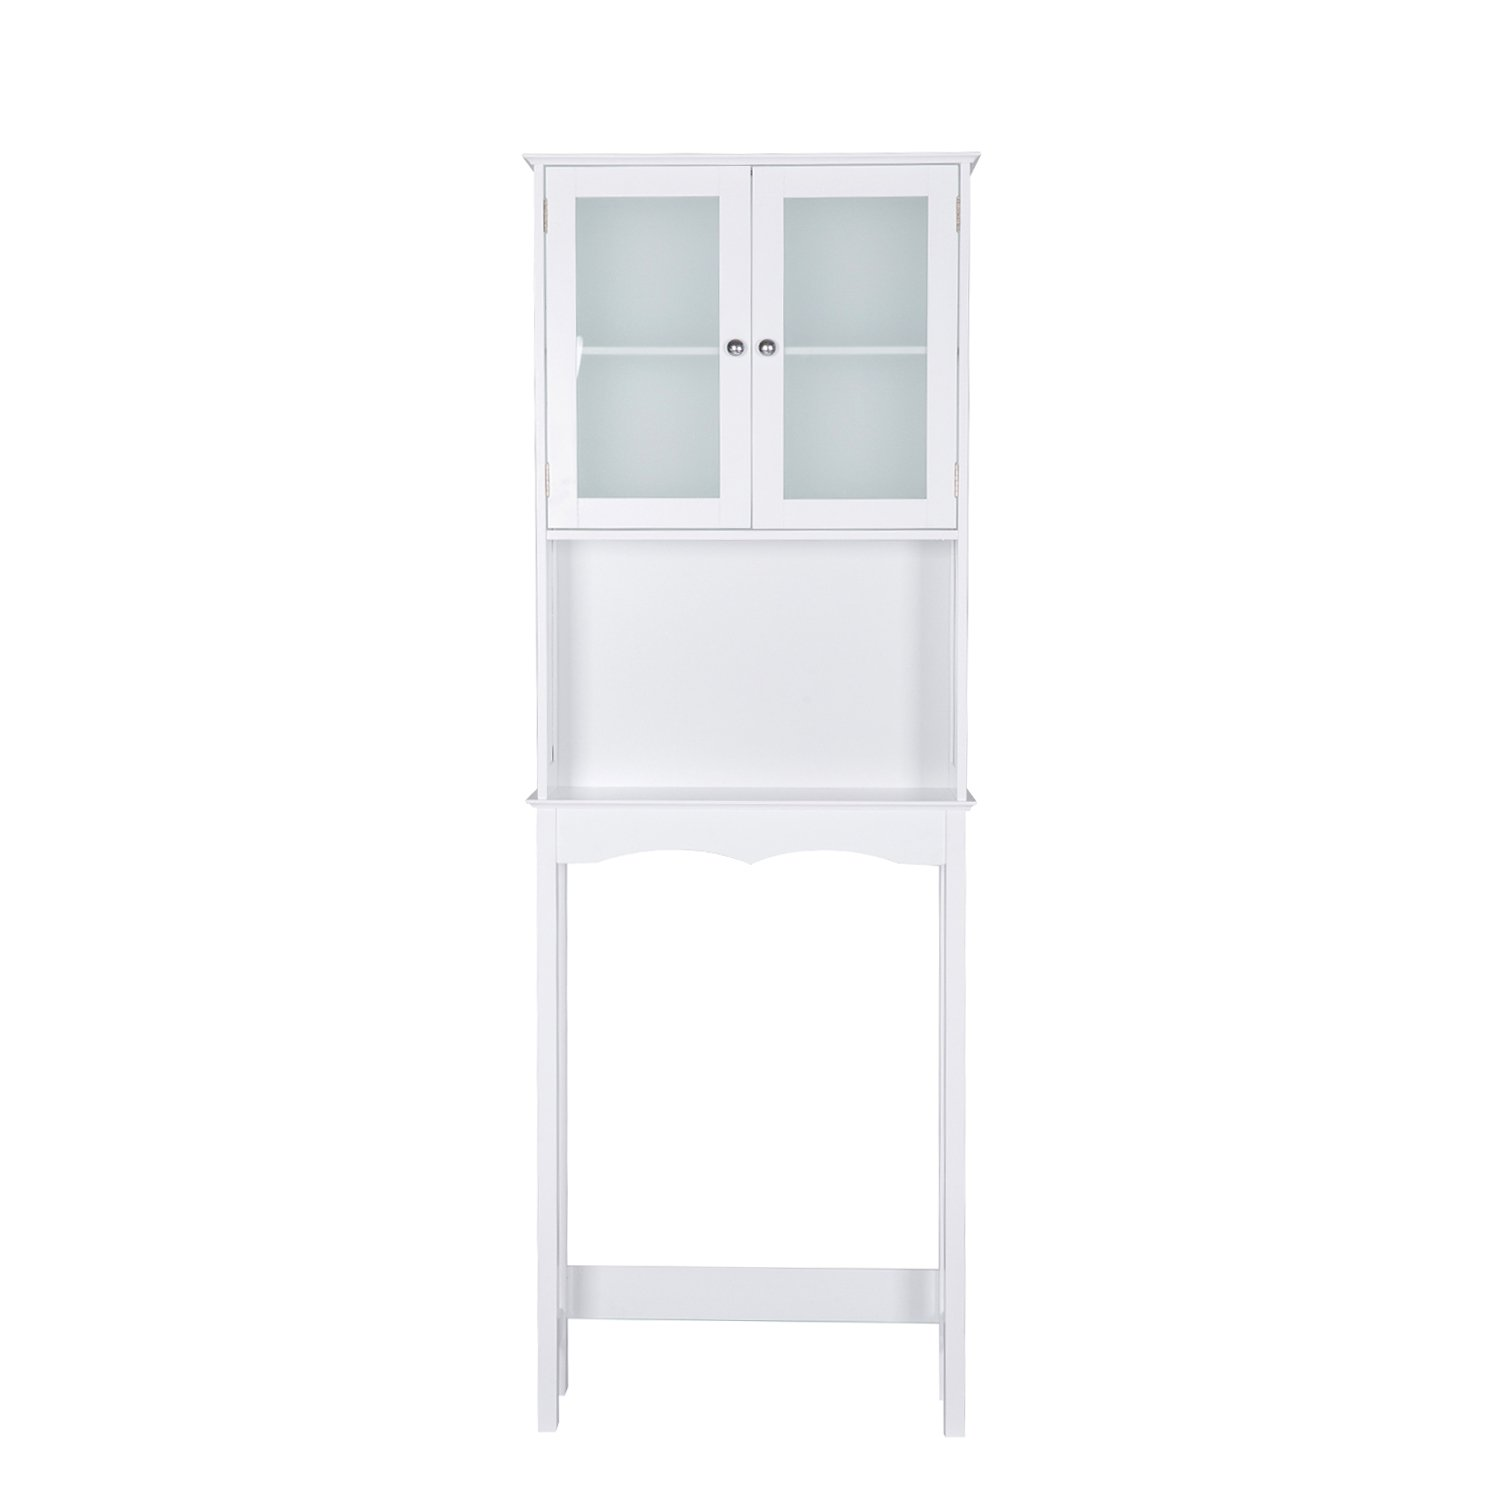 Peachtree Press Inc Home Bathroom Shelf Over The Toilet, Space Saver Cabinet,Bathroom Cabinet Organizer with Moru Tempered Glass Door, White by Peachtree Press Inc (Image #6)